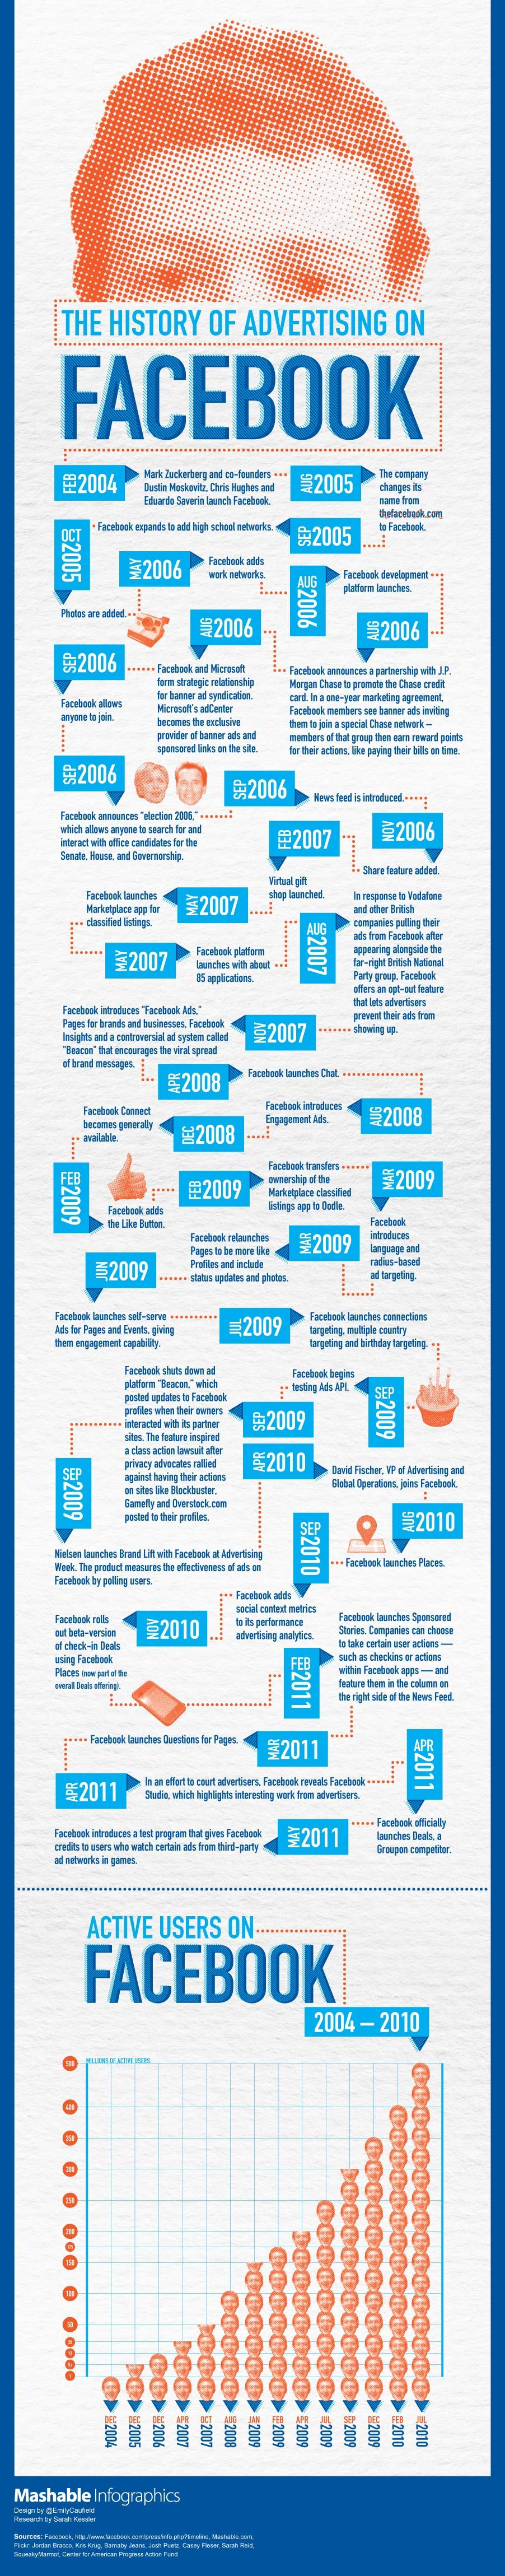 The History of Advertising on Facebook [INFOGRAPHIC]